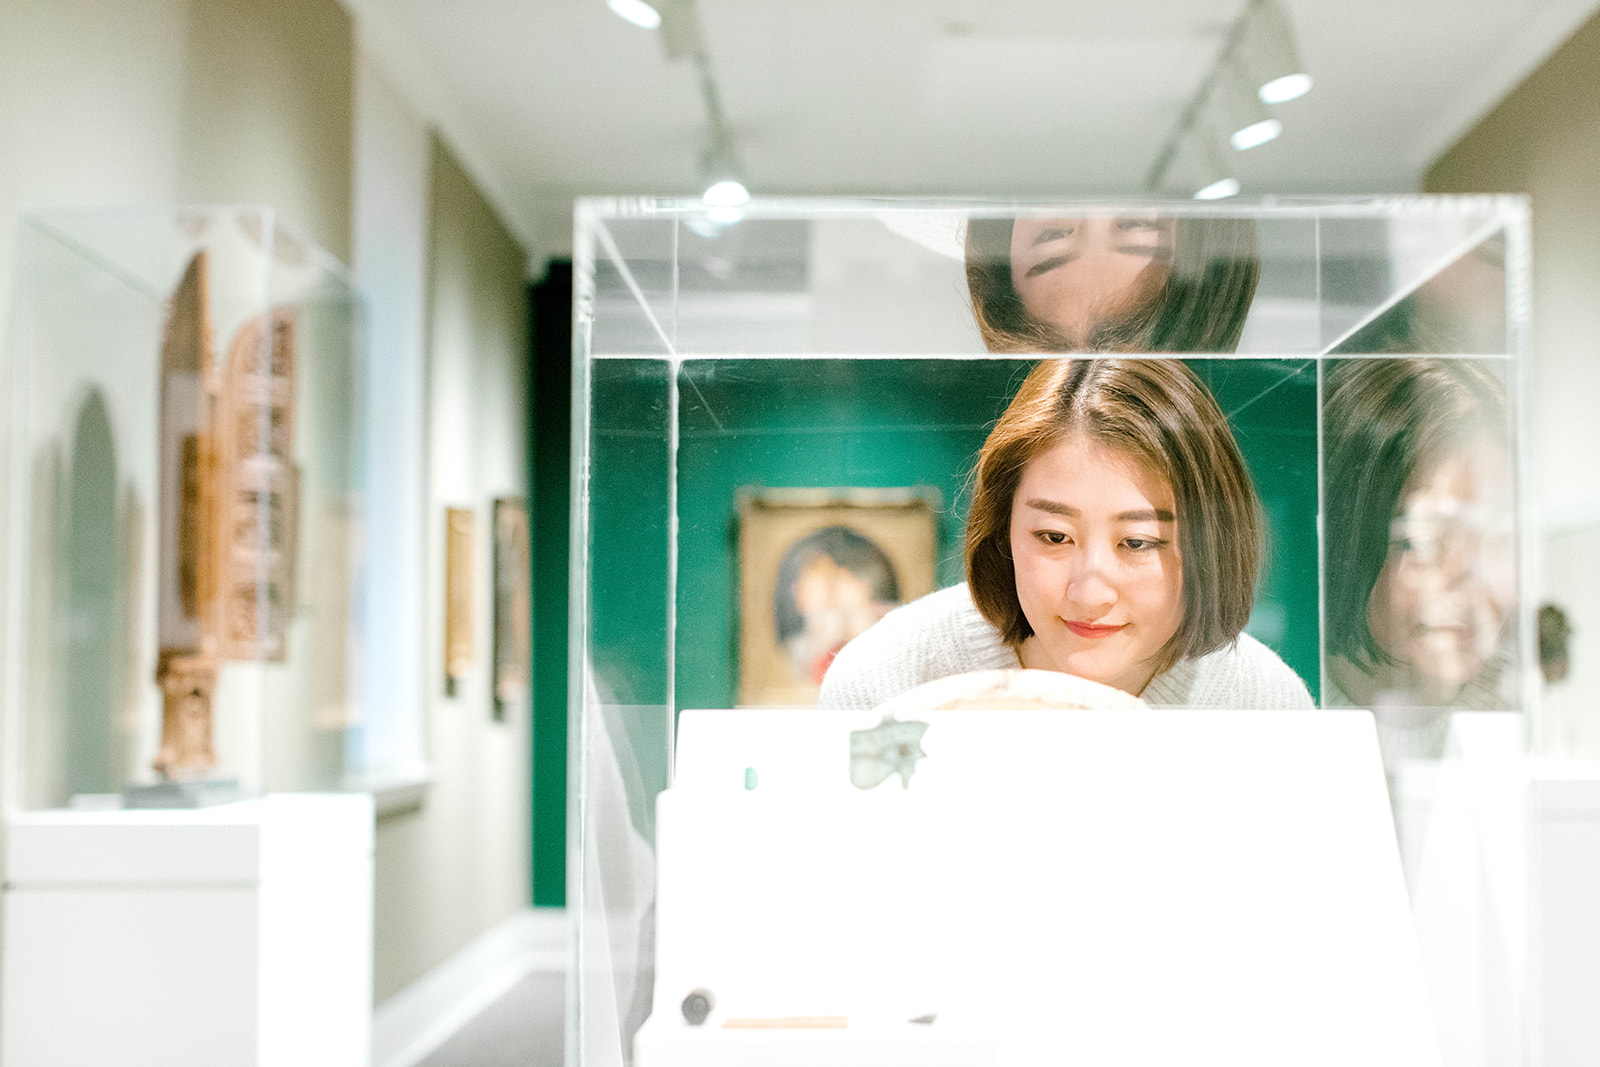 A woman looks at a work of art in a glass case